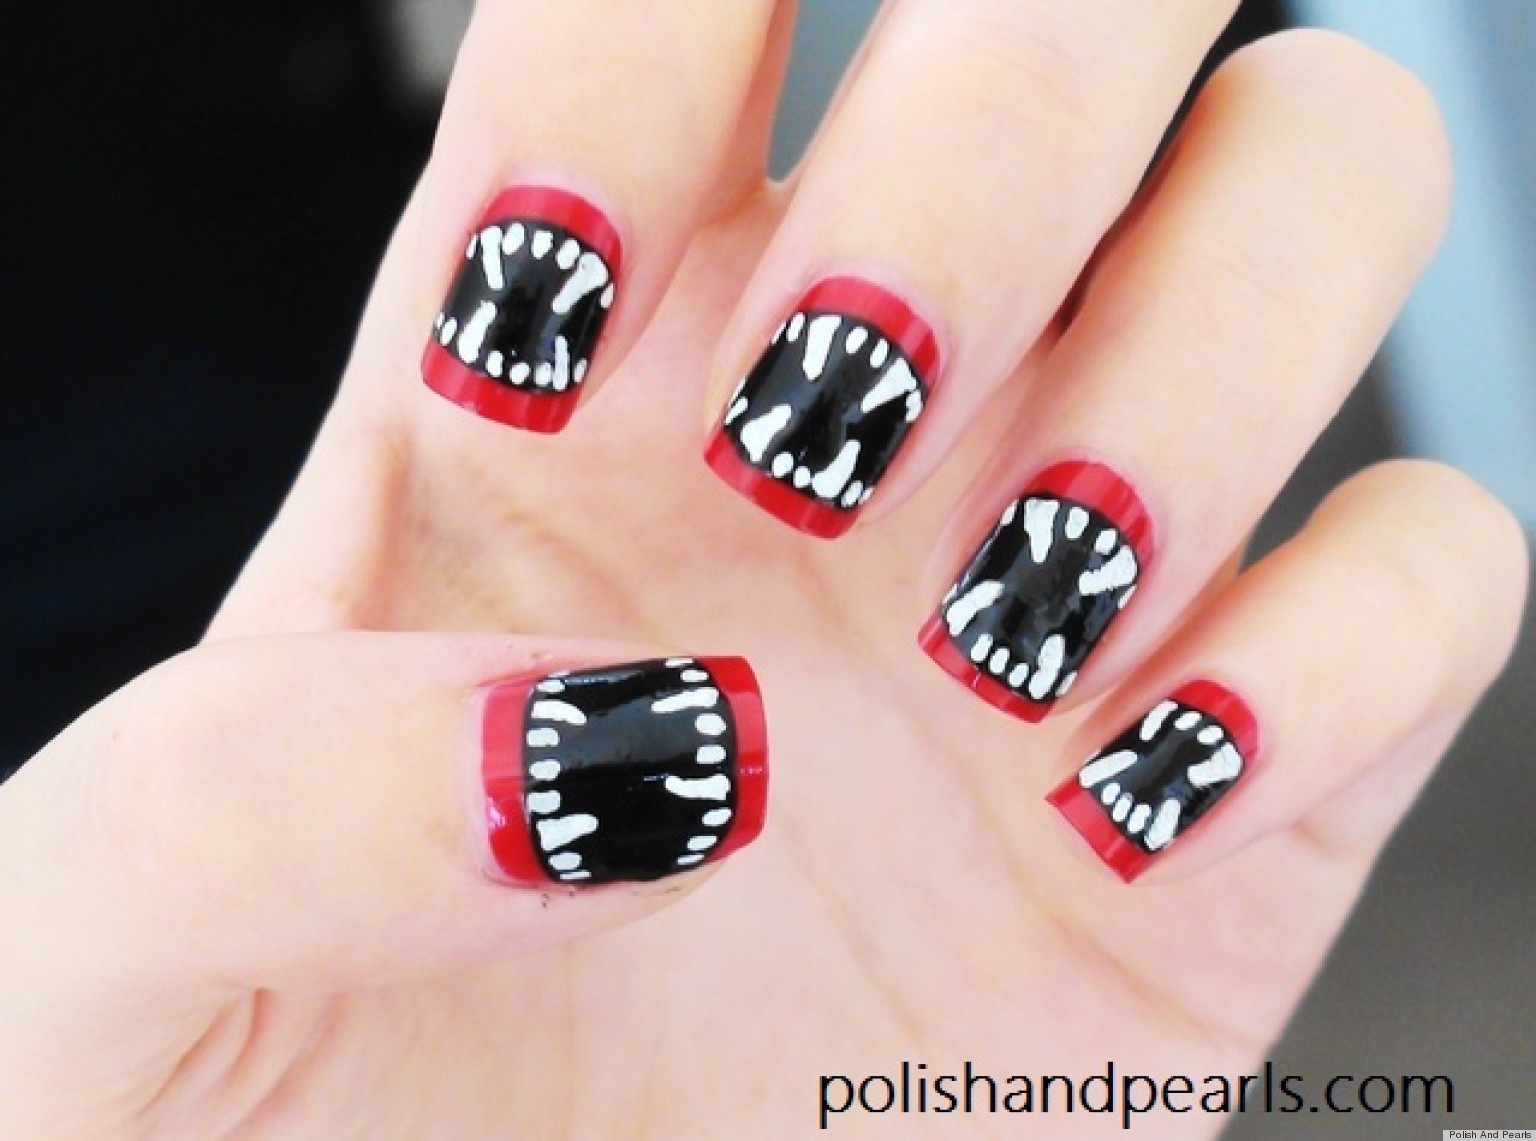 15 halloween nail art designs you can do at home o diy nail art halloween vampire fangs facebook prinsesfo Gallery